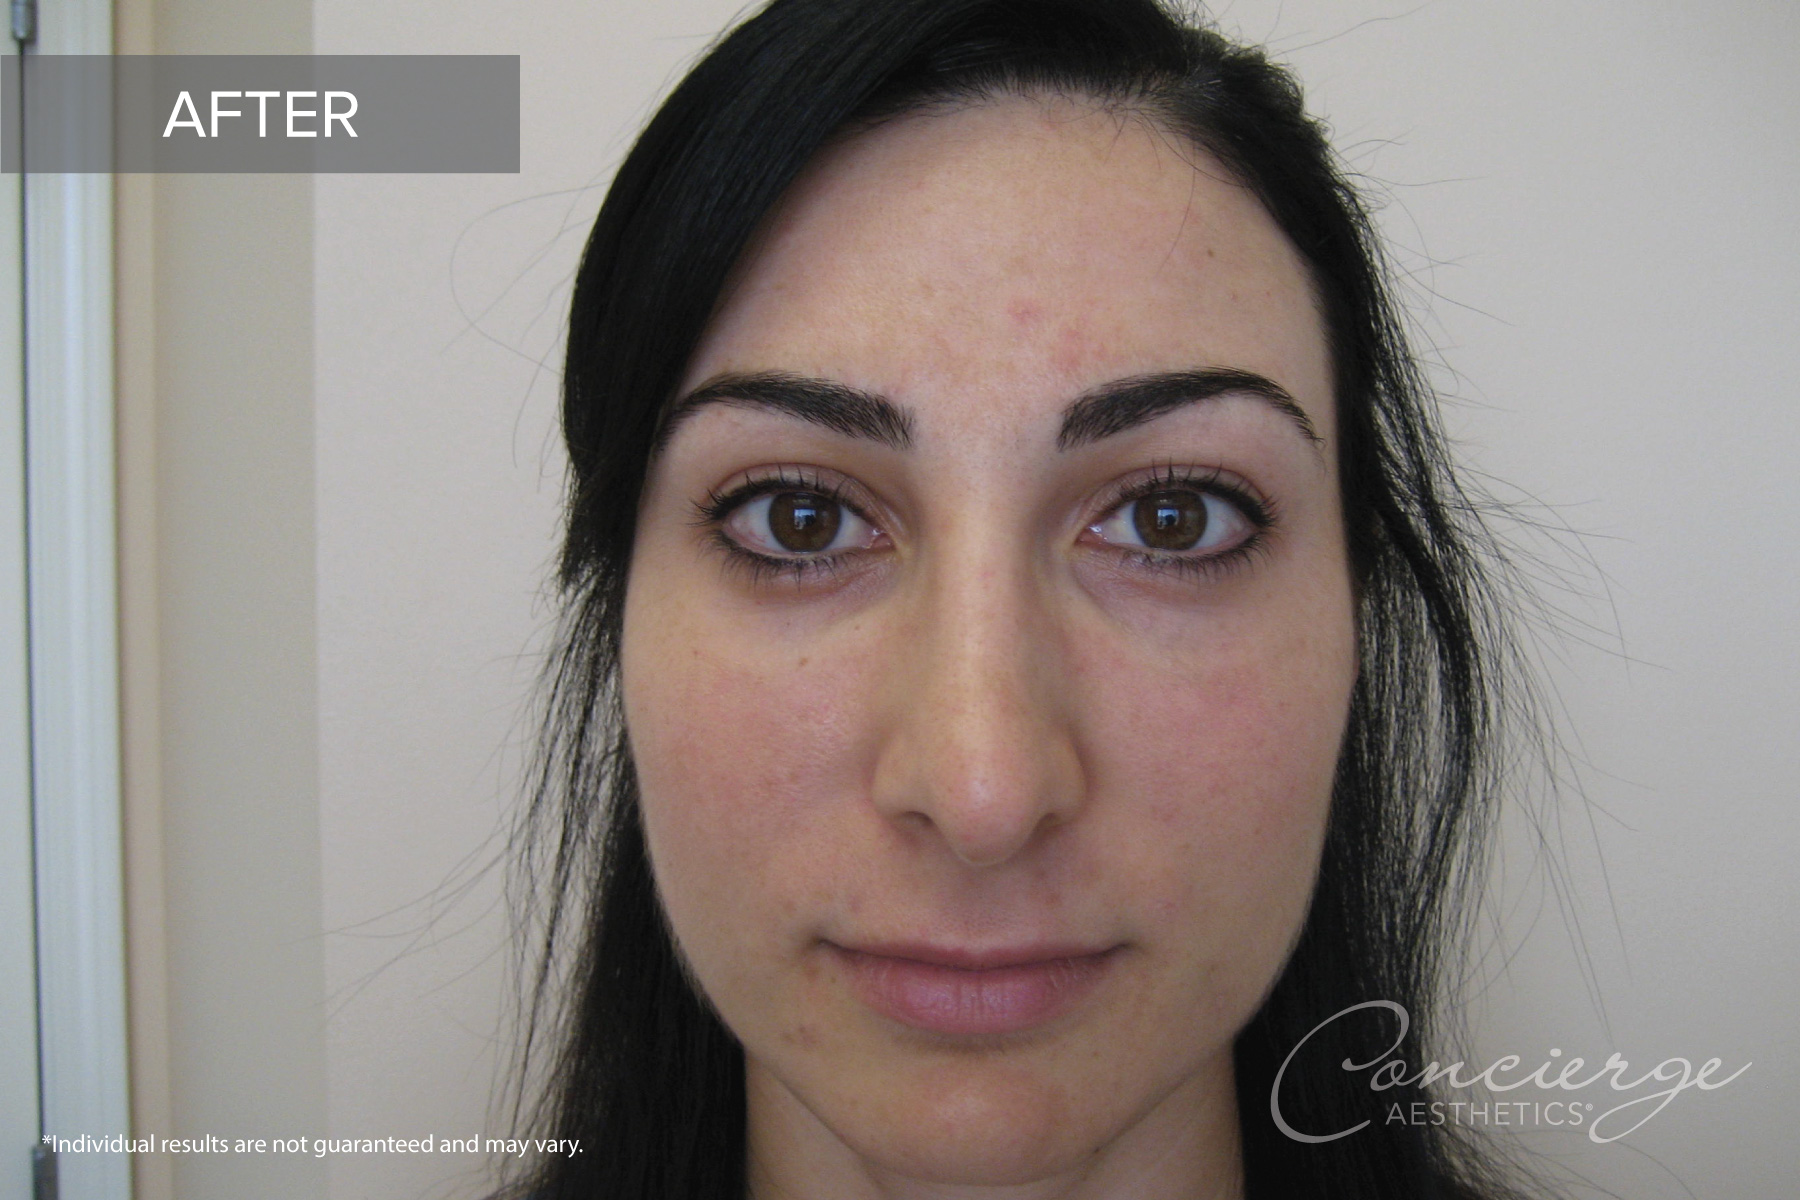 Juvederm Ultra - Under the Eyes - Before and After Photos